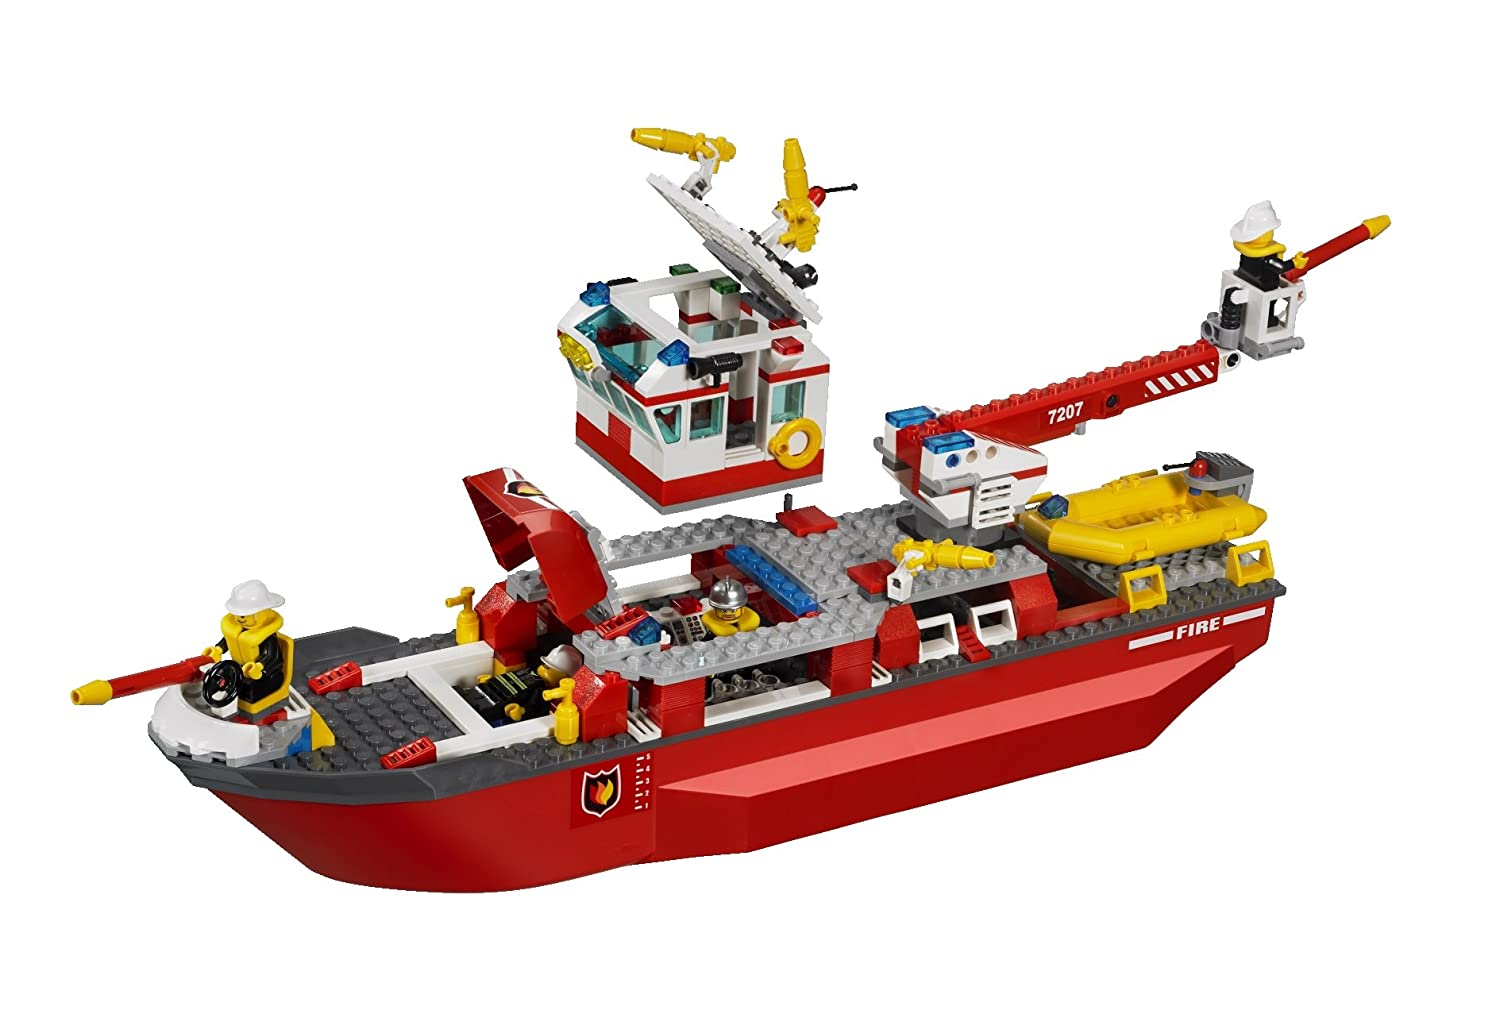 Lego City 7207 Fire Boat Amazon Toys Games